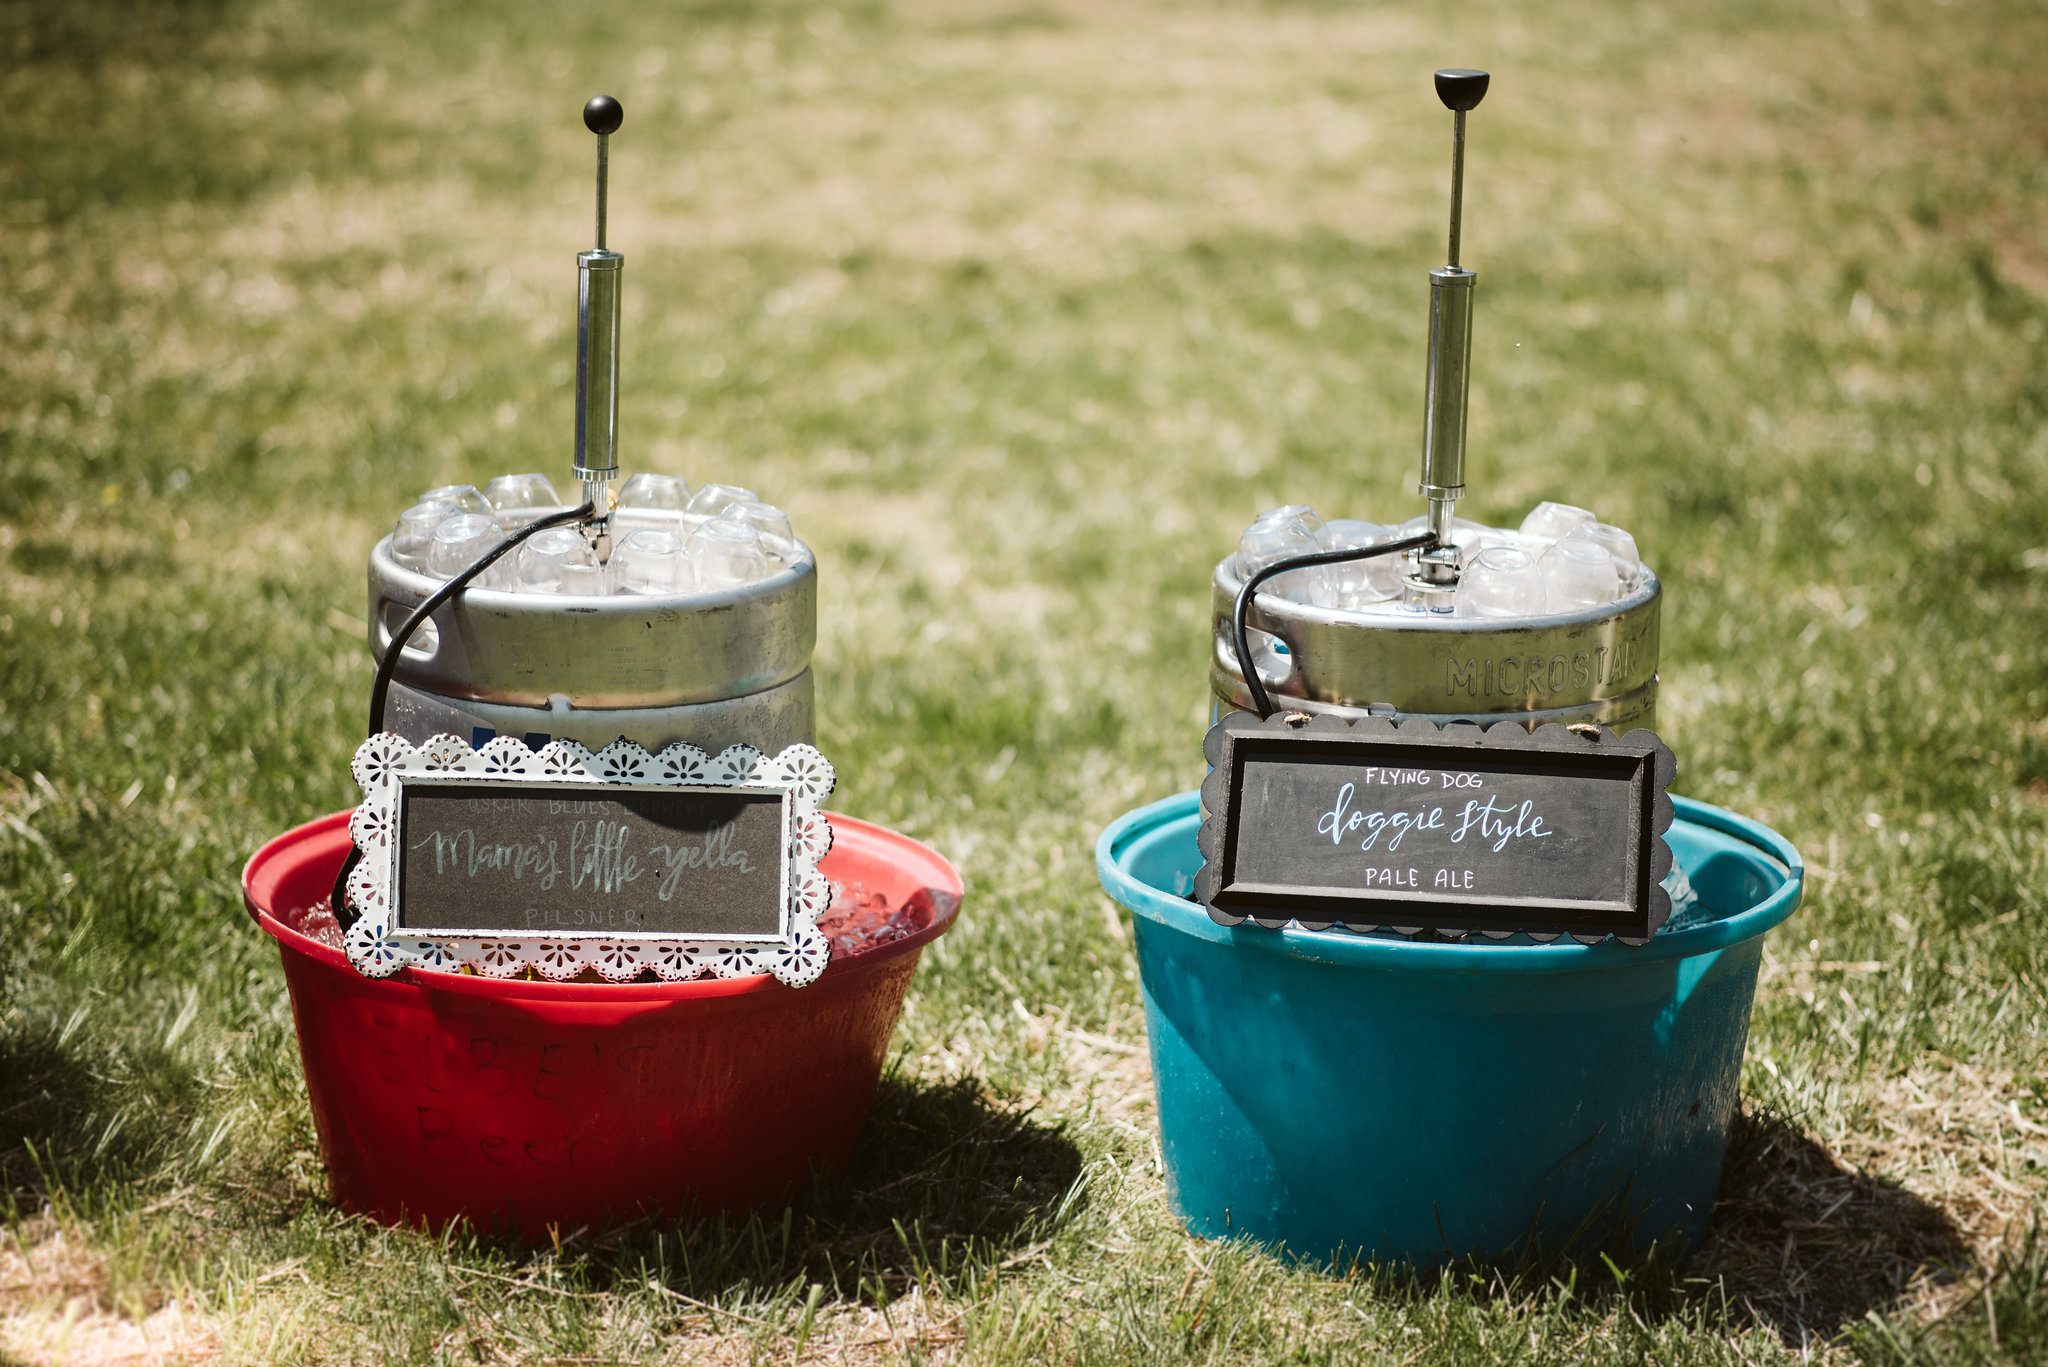 Spring Outdoor Wedding, Park, Baltimore Wedding Photographer, DIY, Classic, Upcycled, Garden Party, Romantic, Kegs with Handmade Signs, Local Craft Beer, Reception Decor